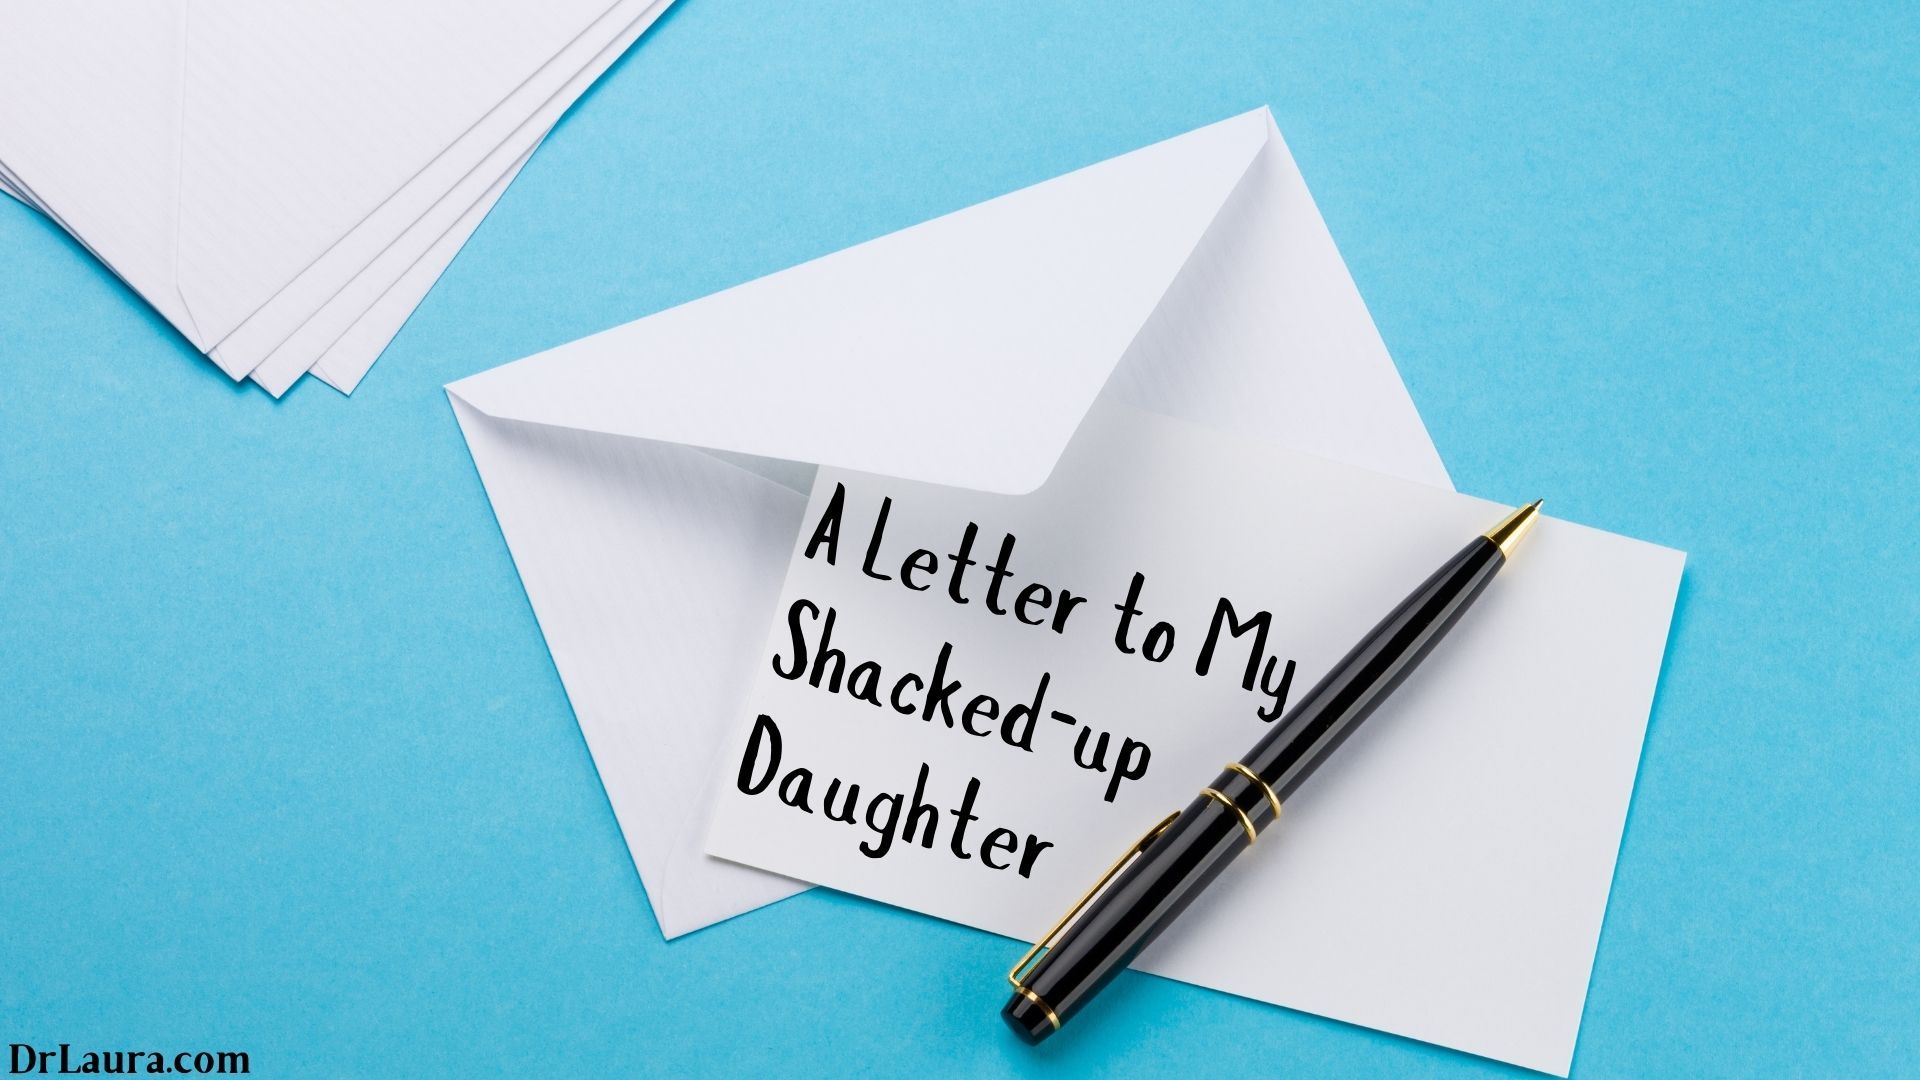 Email of the Day: A Letter to My Shacked-up Daughter